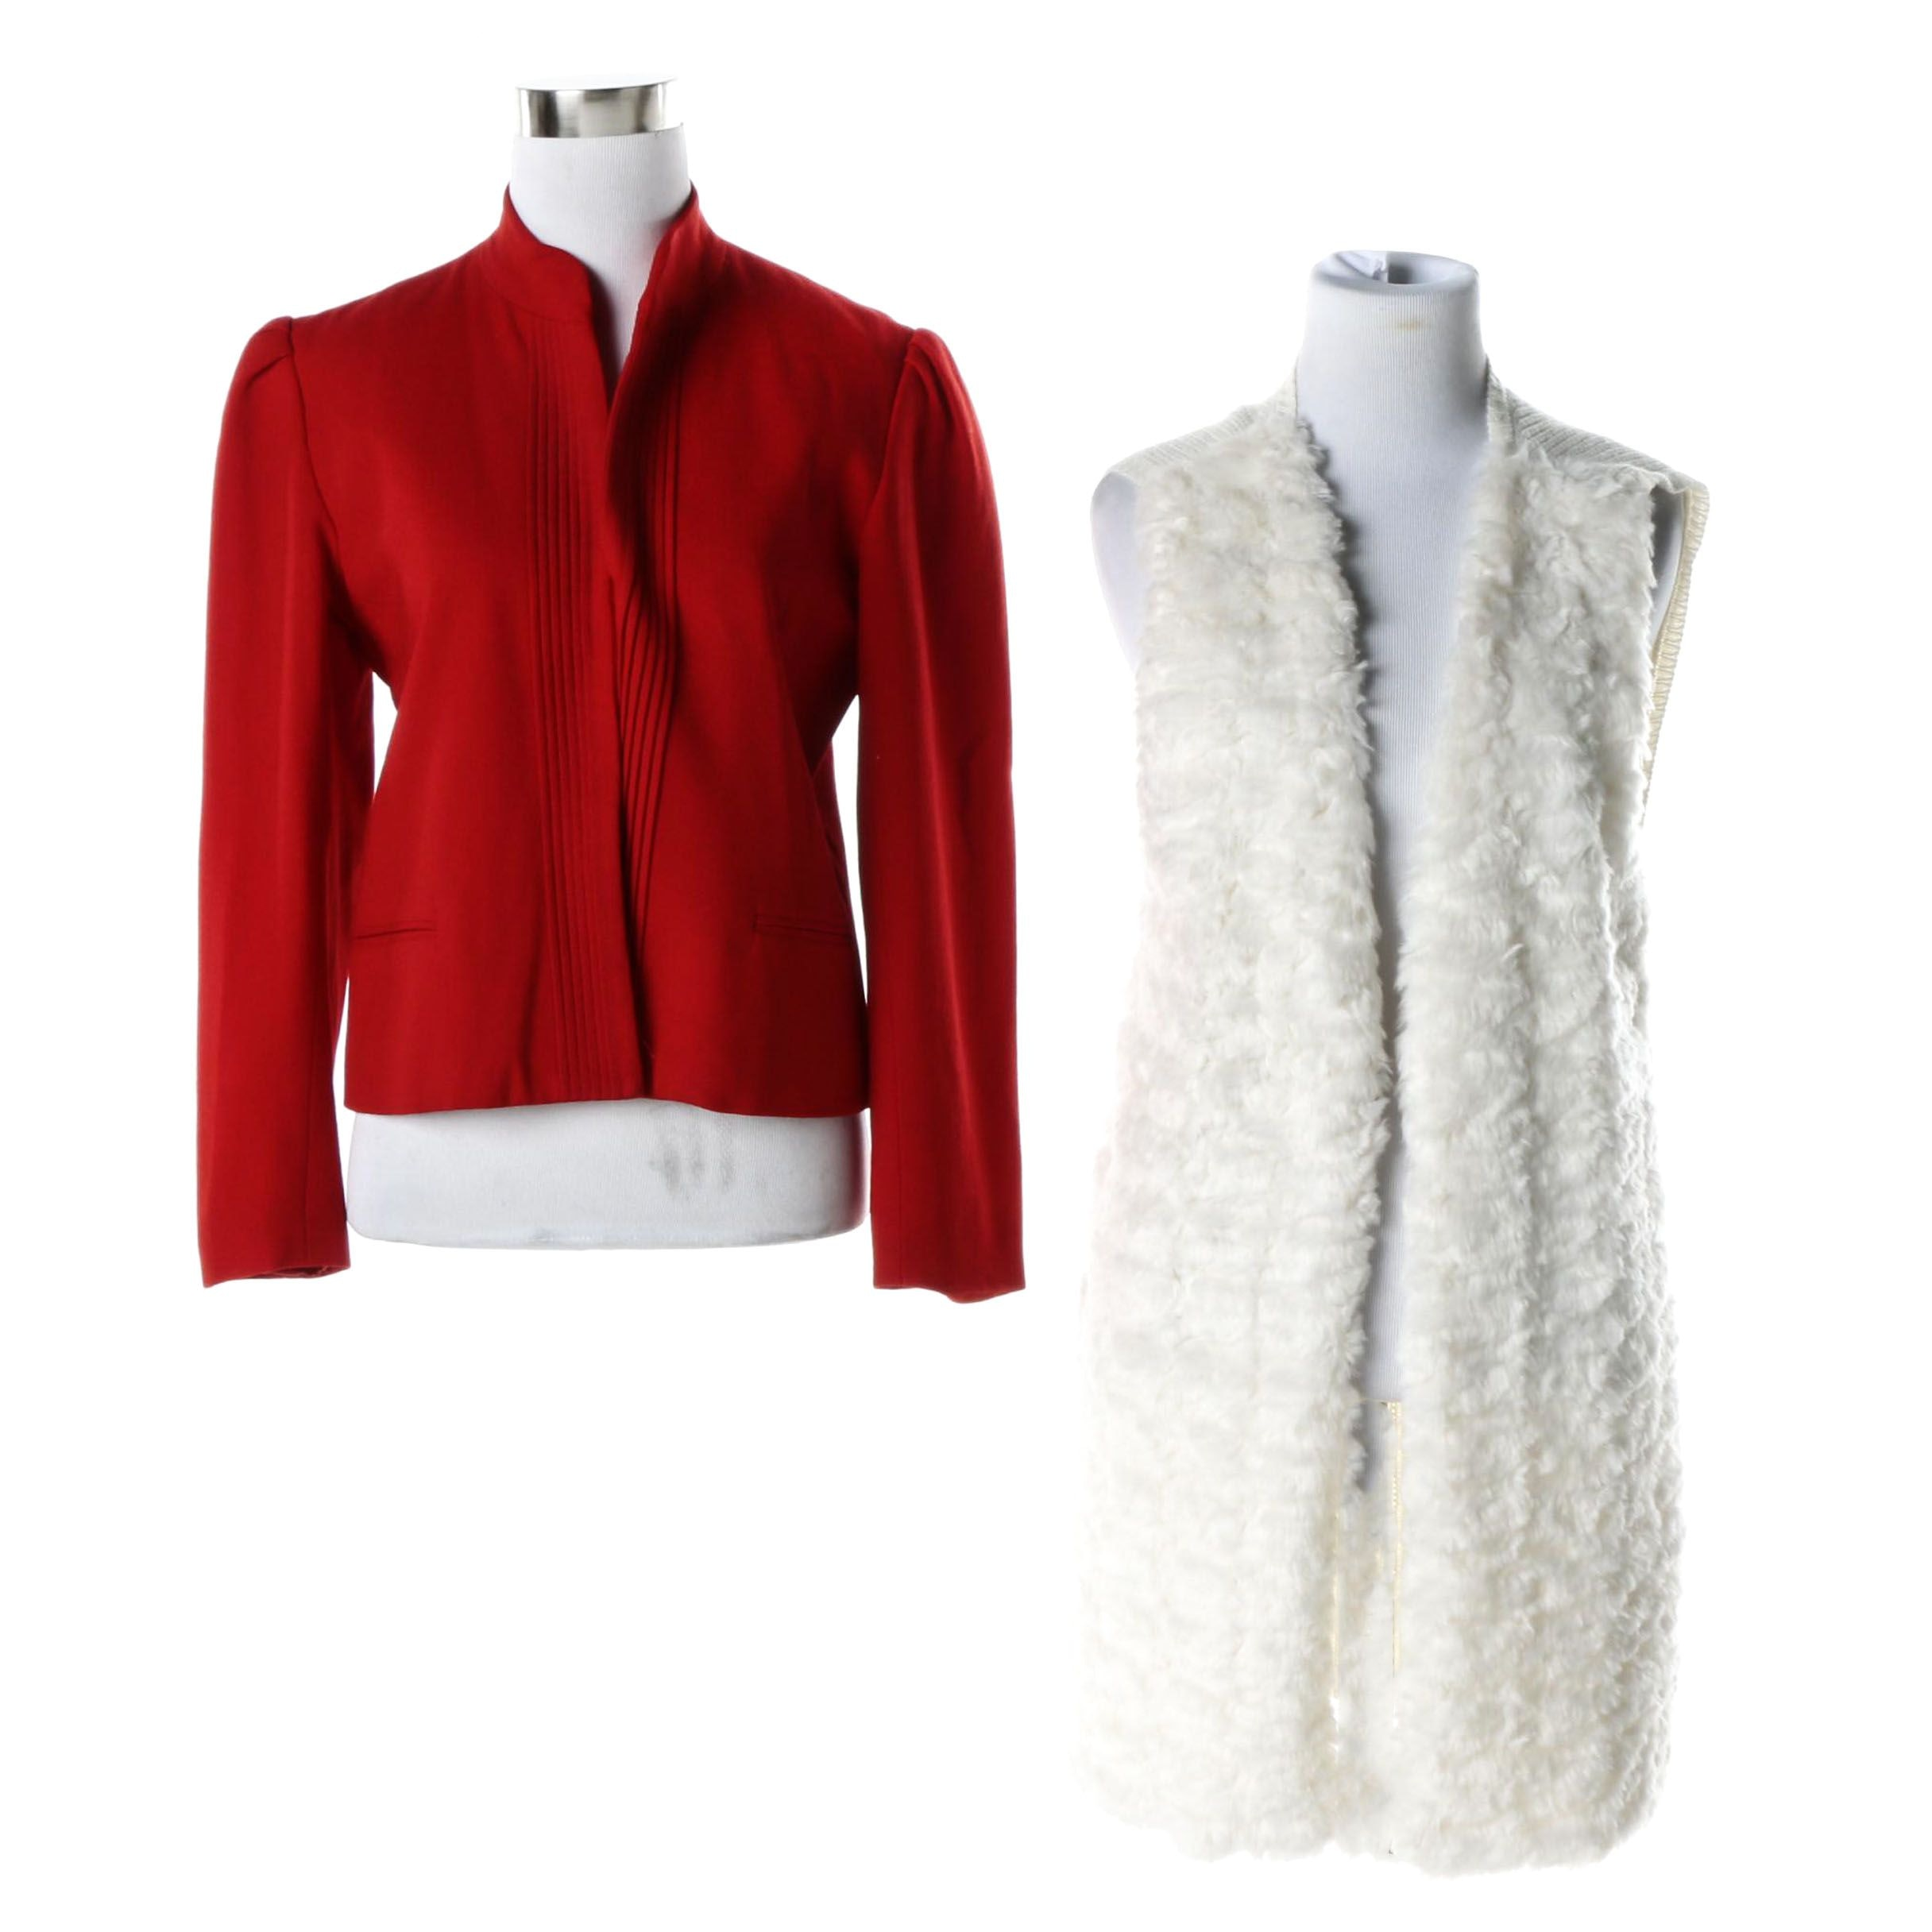 Women's Richard Neal Ltd. Red Wool Jacket and an Off-White Faux Fur Vest